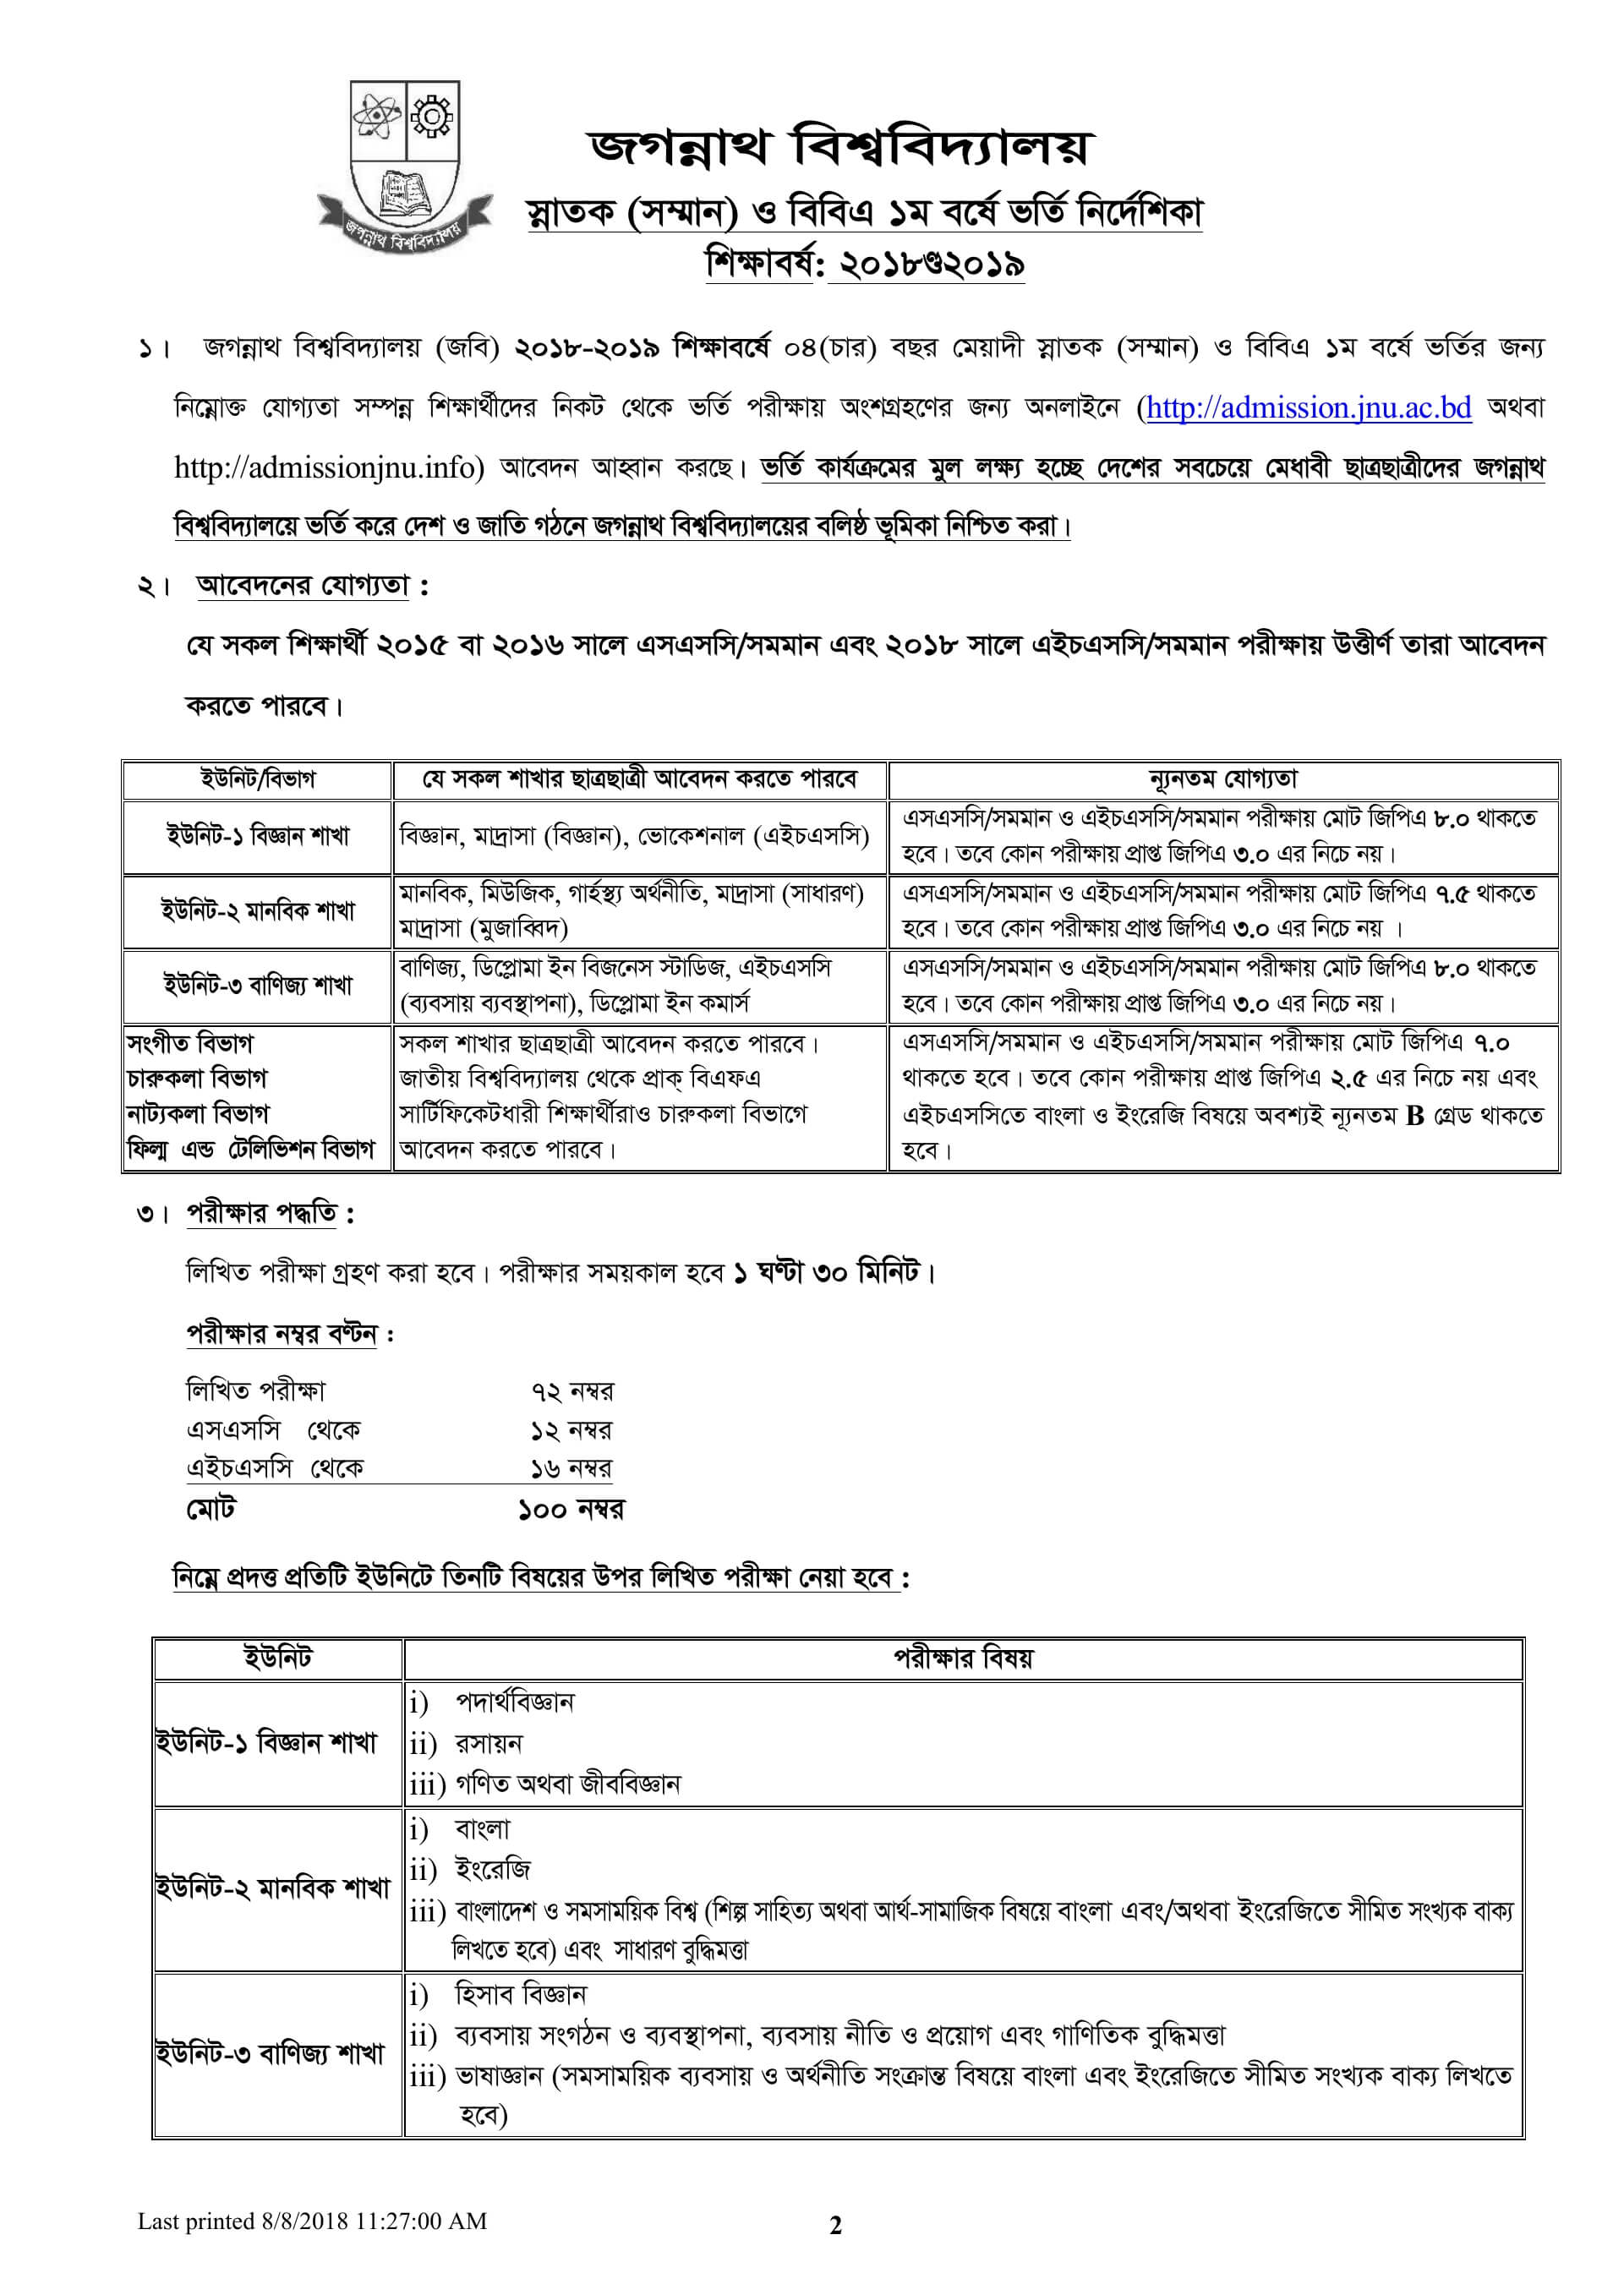 Jagannath University Admission Guideline-1